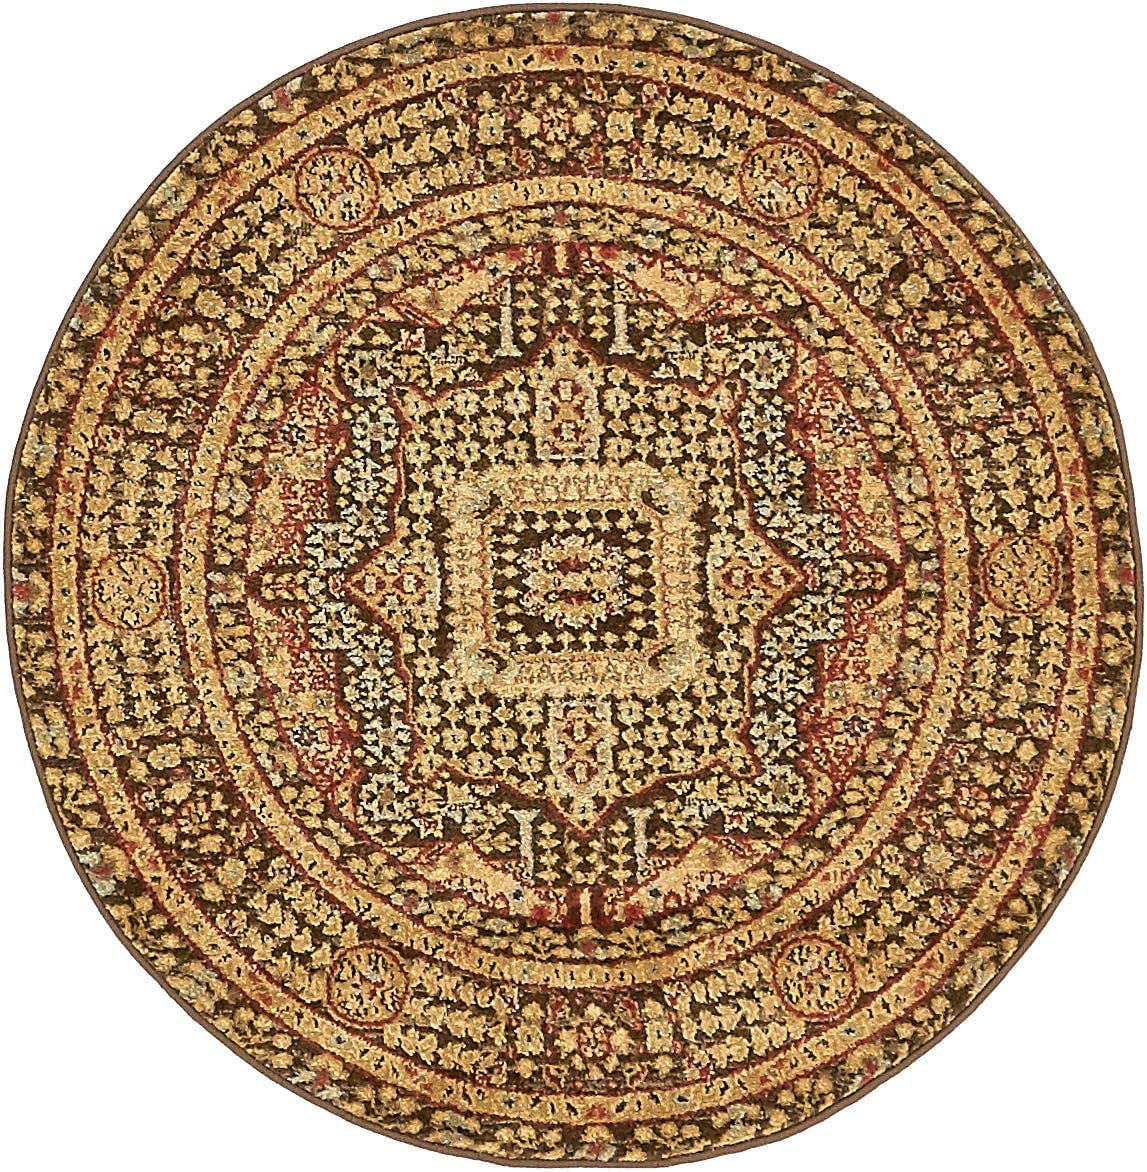 Unique Loom Palace Collection Traditoinal Geometric Classic Brown Round Rug 3 3 x 3 3